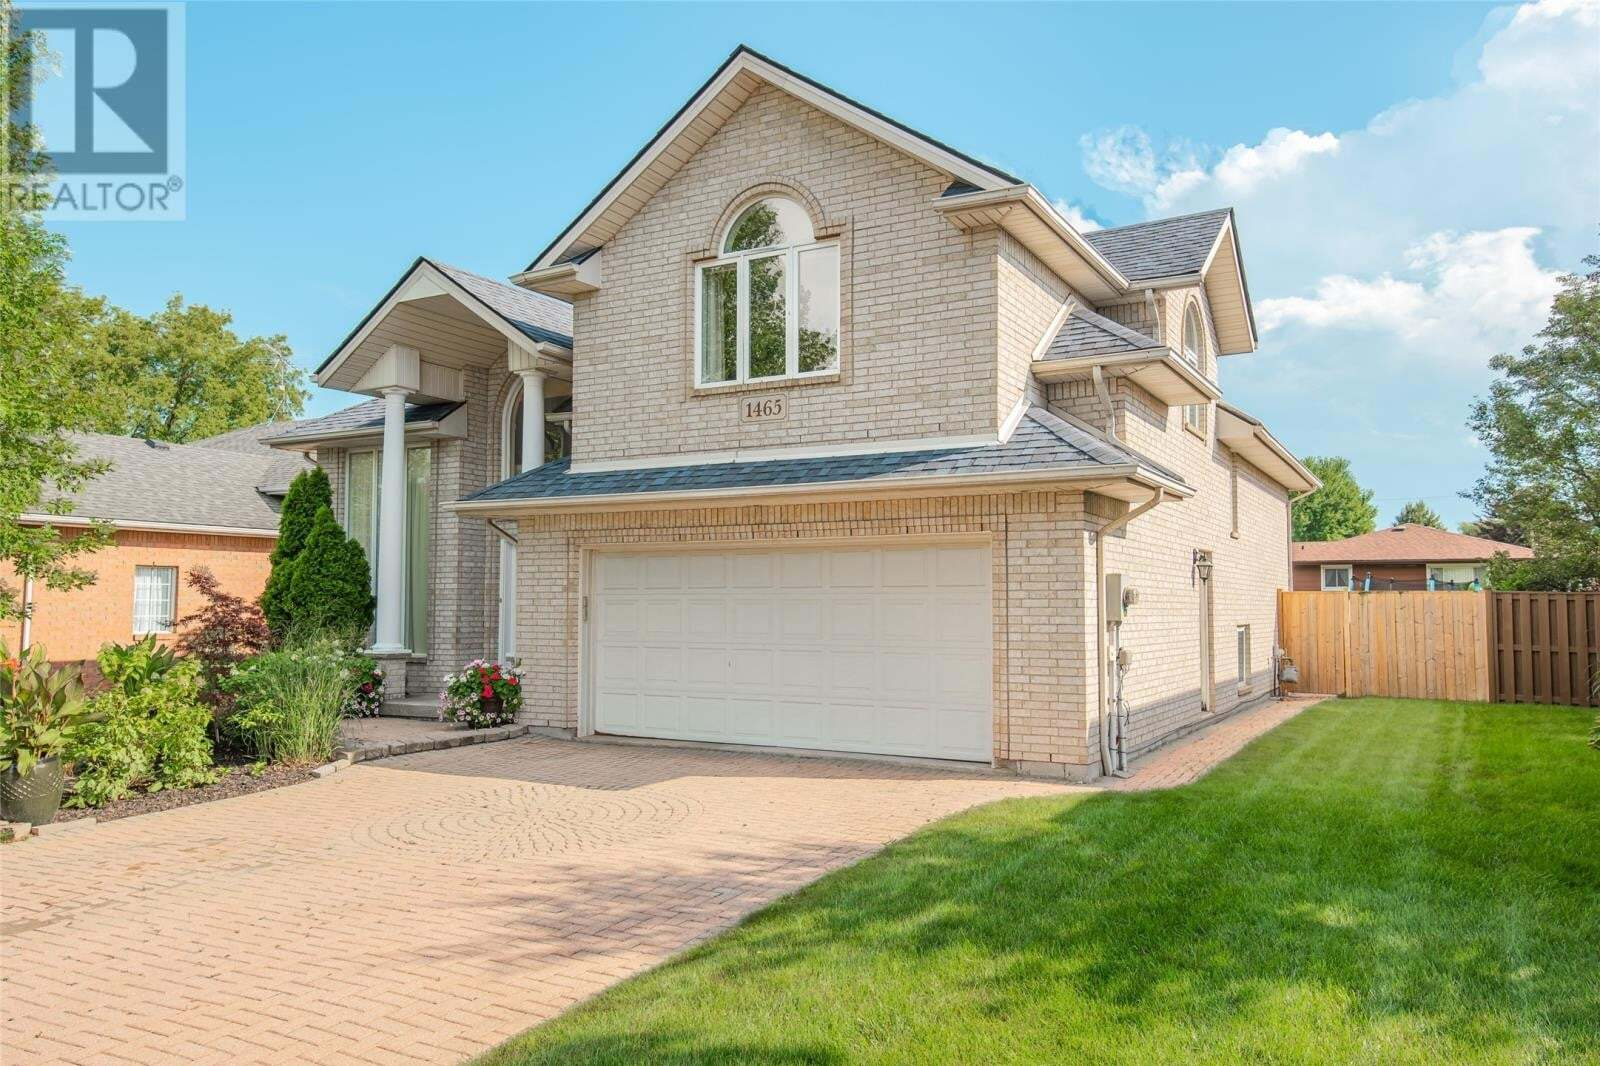 House for sale at 1465 Monck Ave Lasalle Ontario - MLS: 20009623